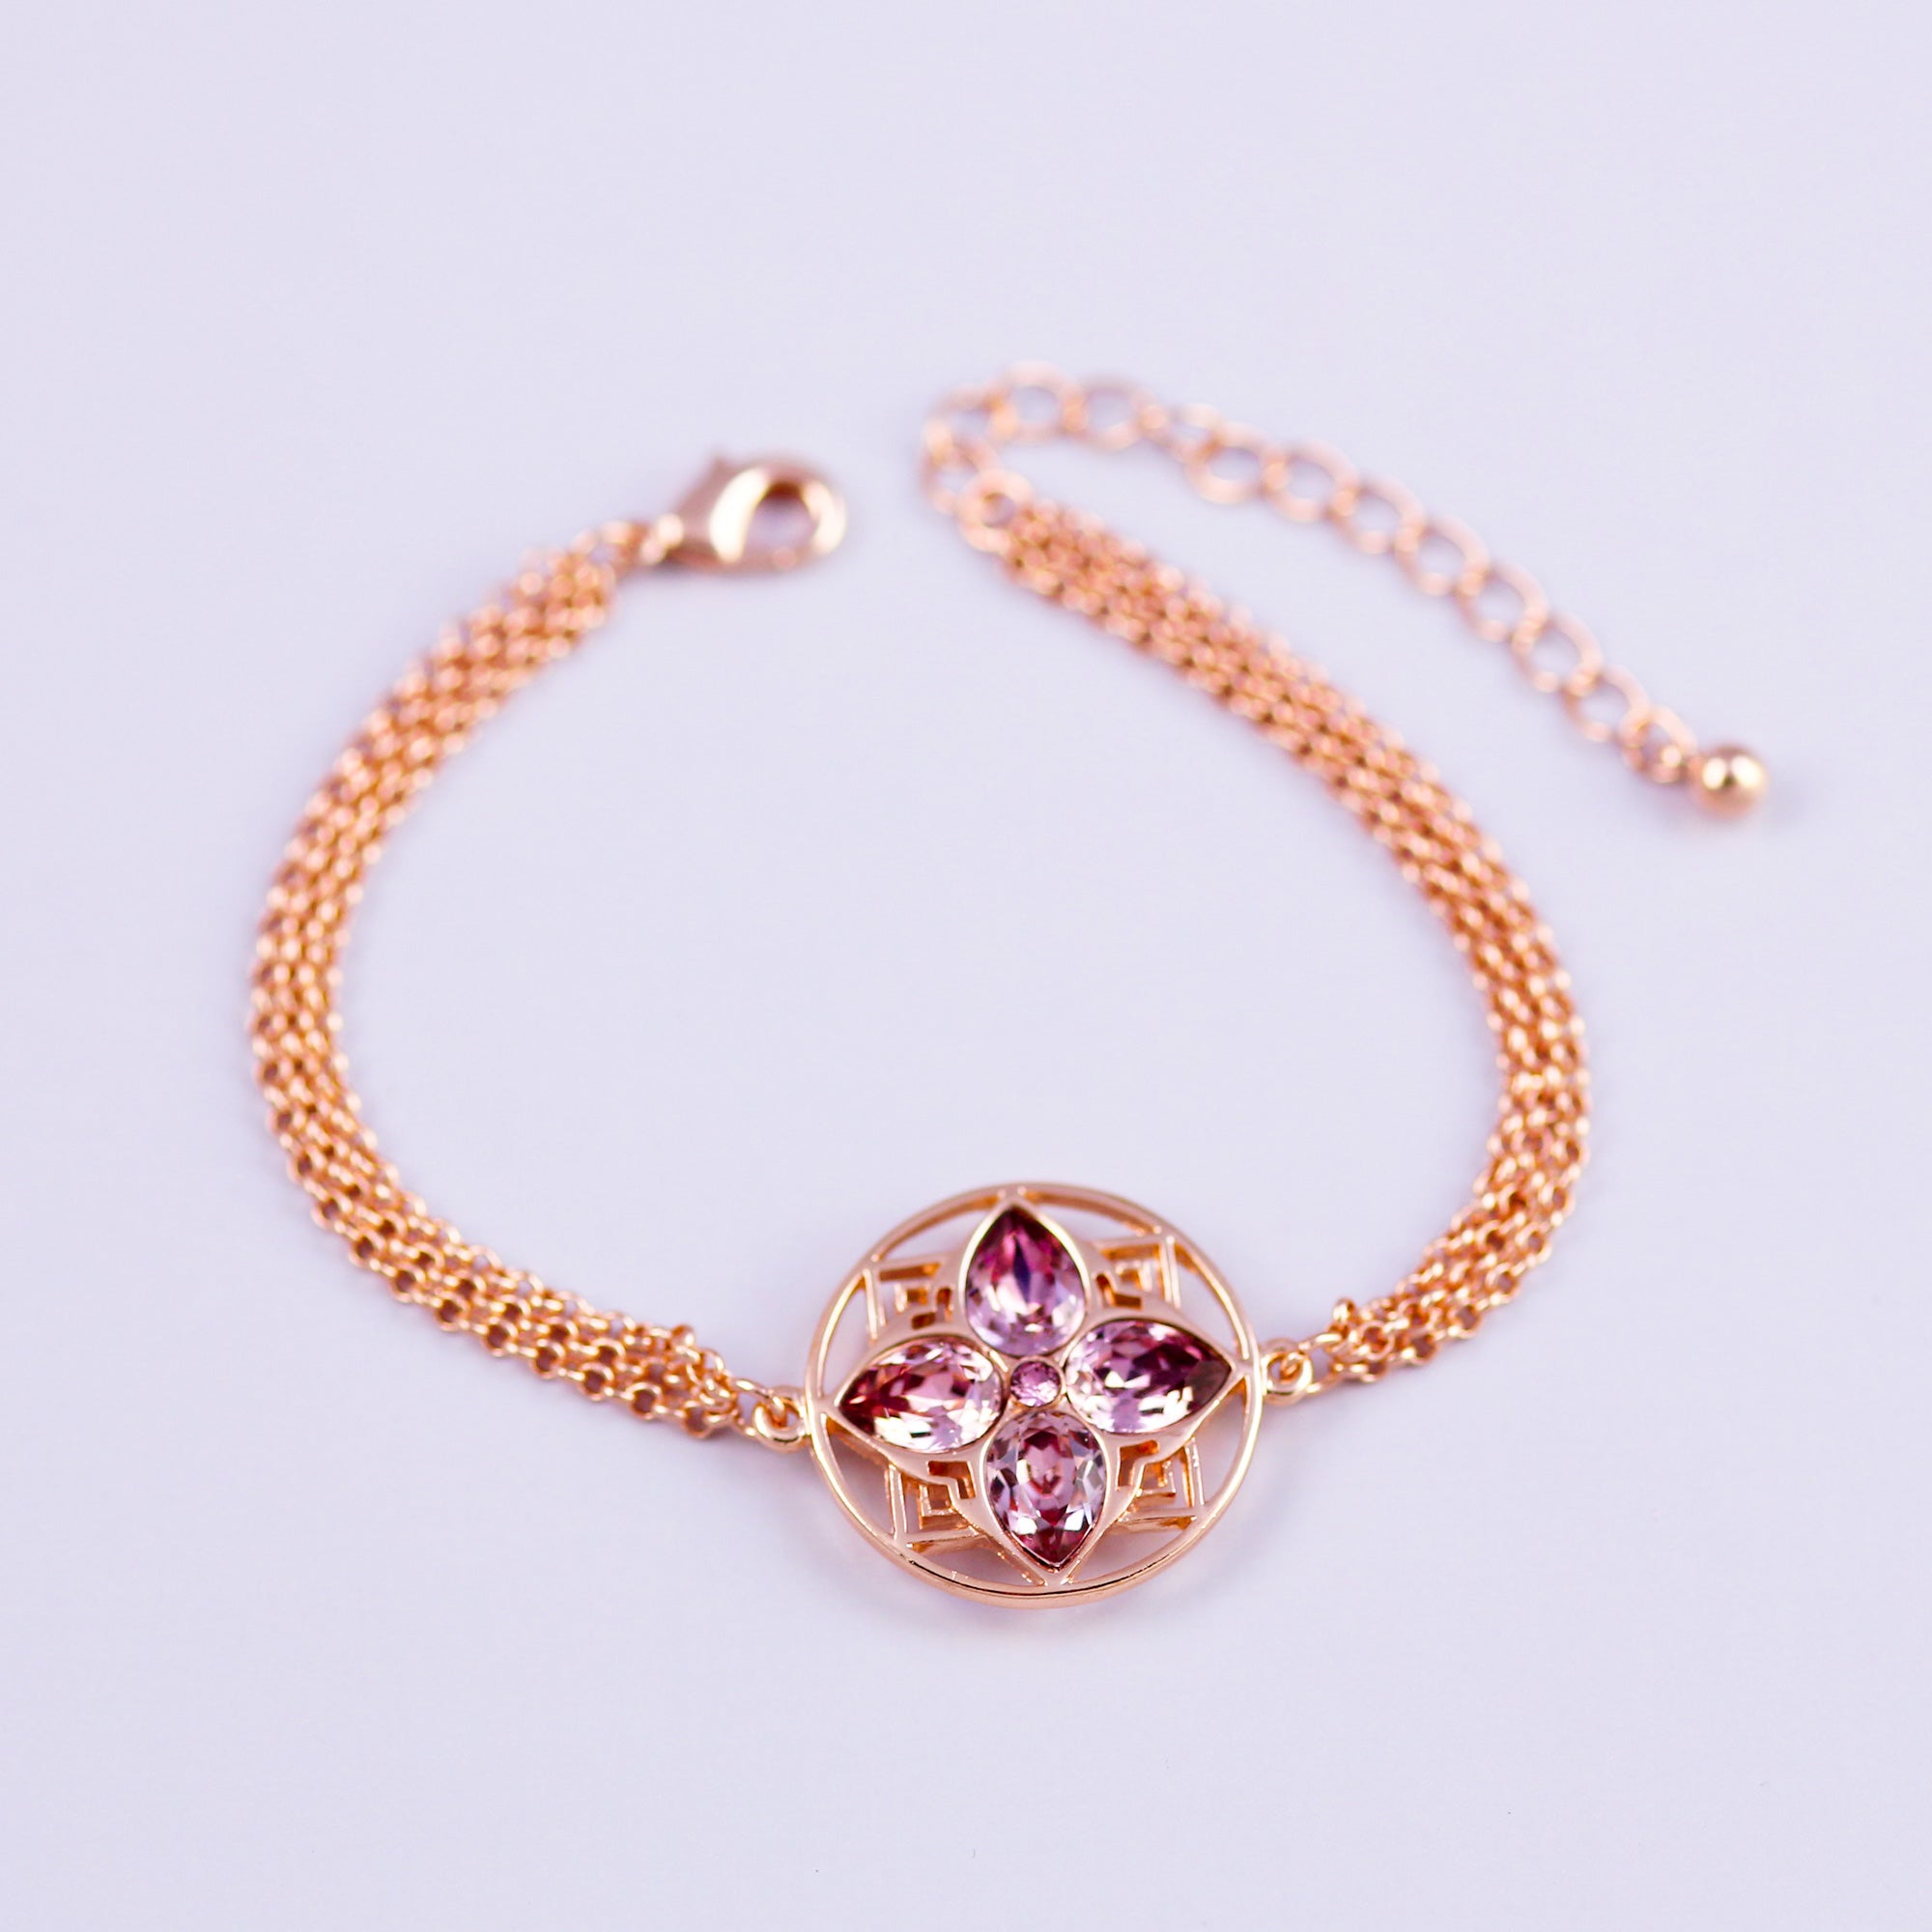 Arabesque Four Petal Flower Bracelet | Gold & Antique Pink